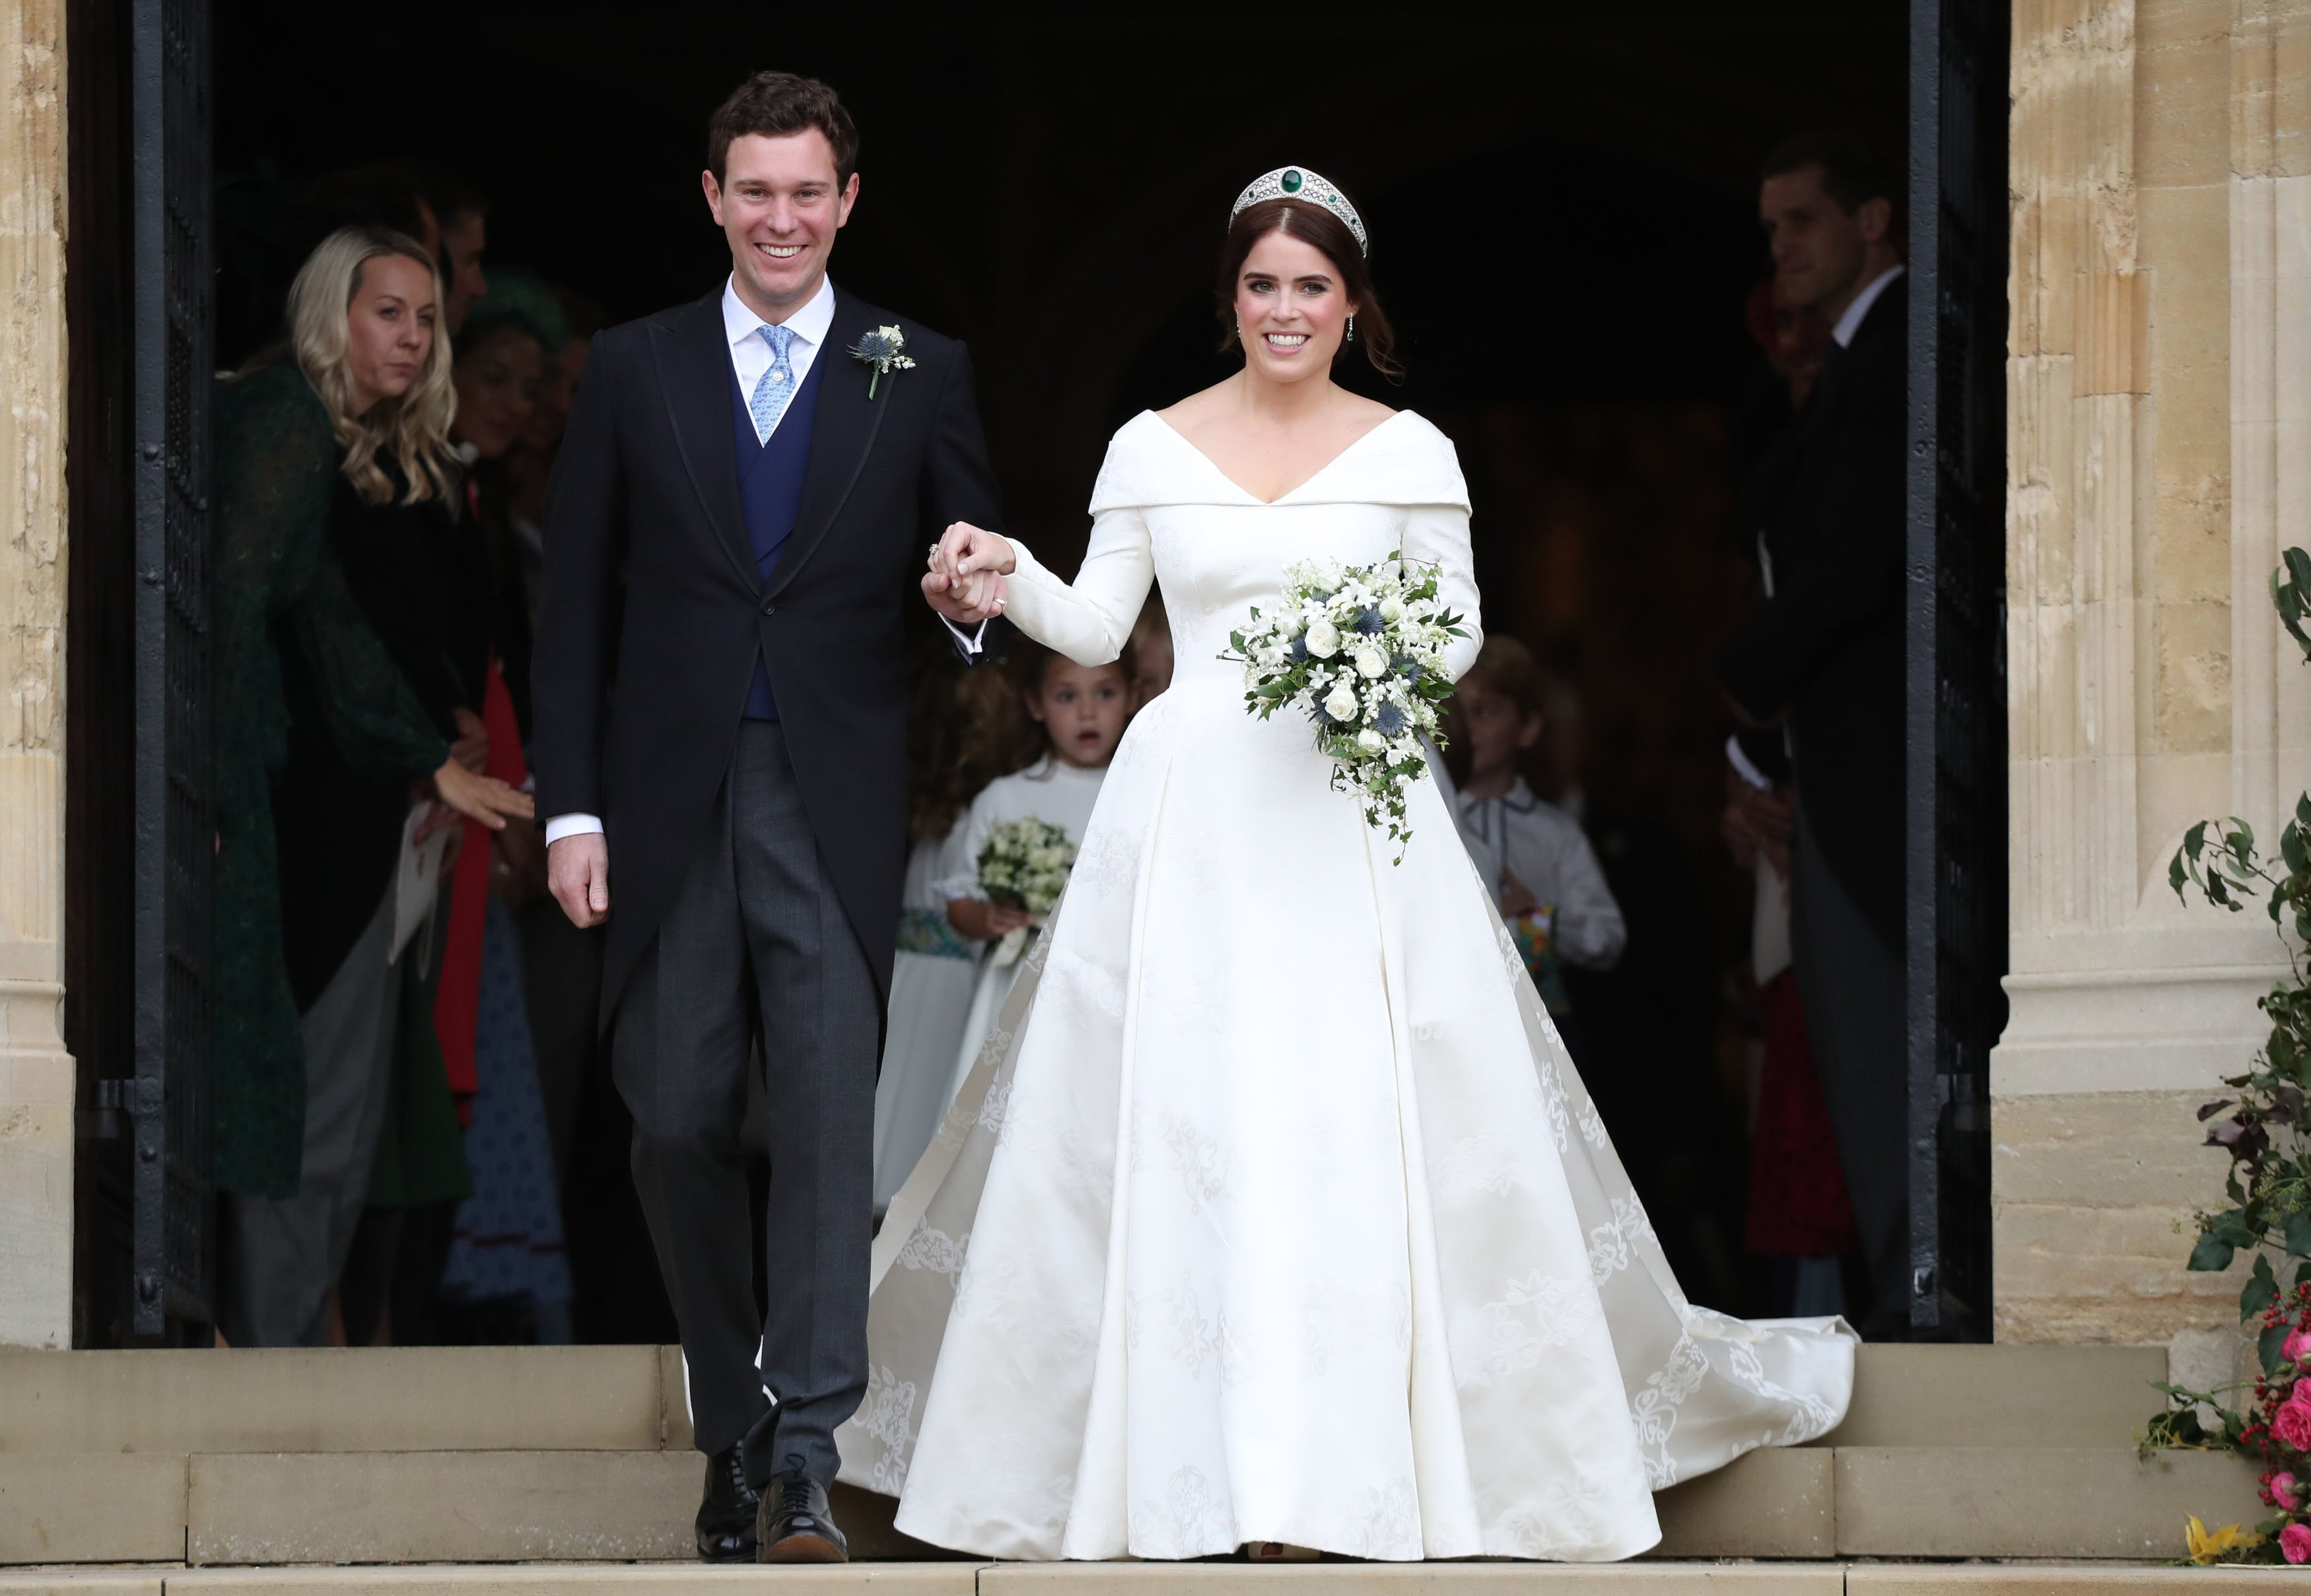 Image Source: Getty Images/WPA Pool/Princess Eugenie of York and Jack Brooksbank leave St George's Chapel in Windsor Castle following their wedding at St. George's Chapel on October 12, 2018 in Windsor, England